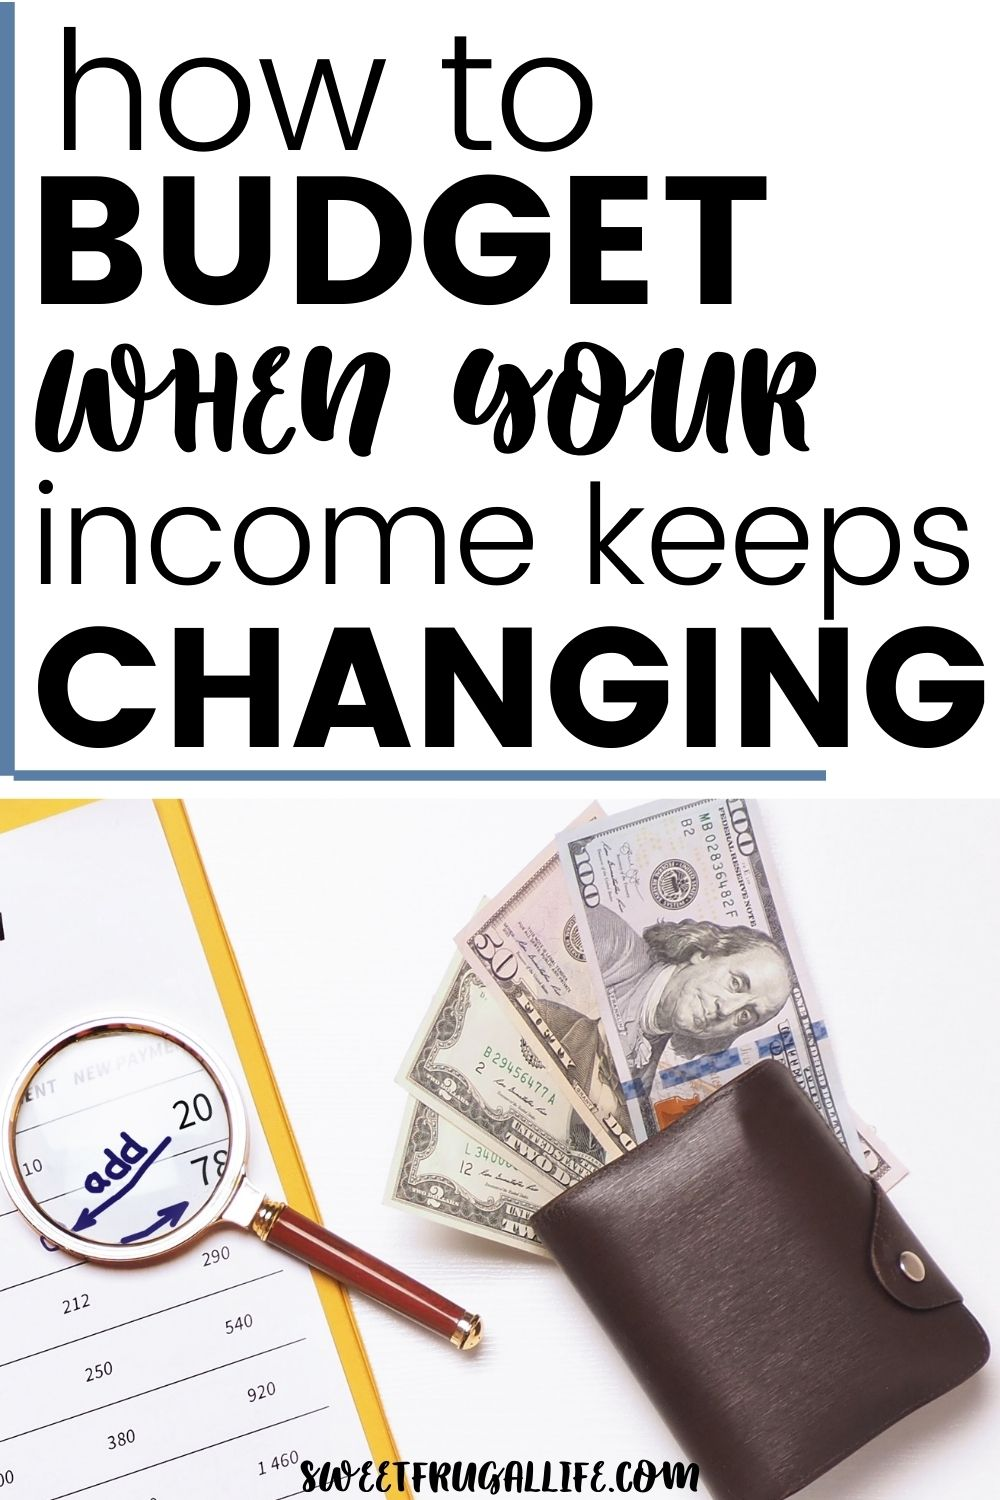 budgeting tips for irregular budgets - how to make a budget with variable income